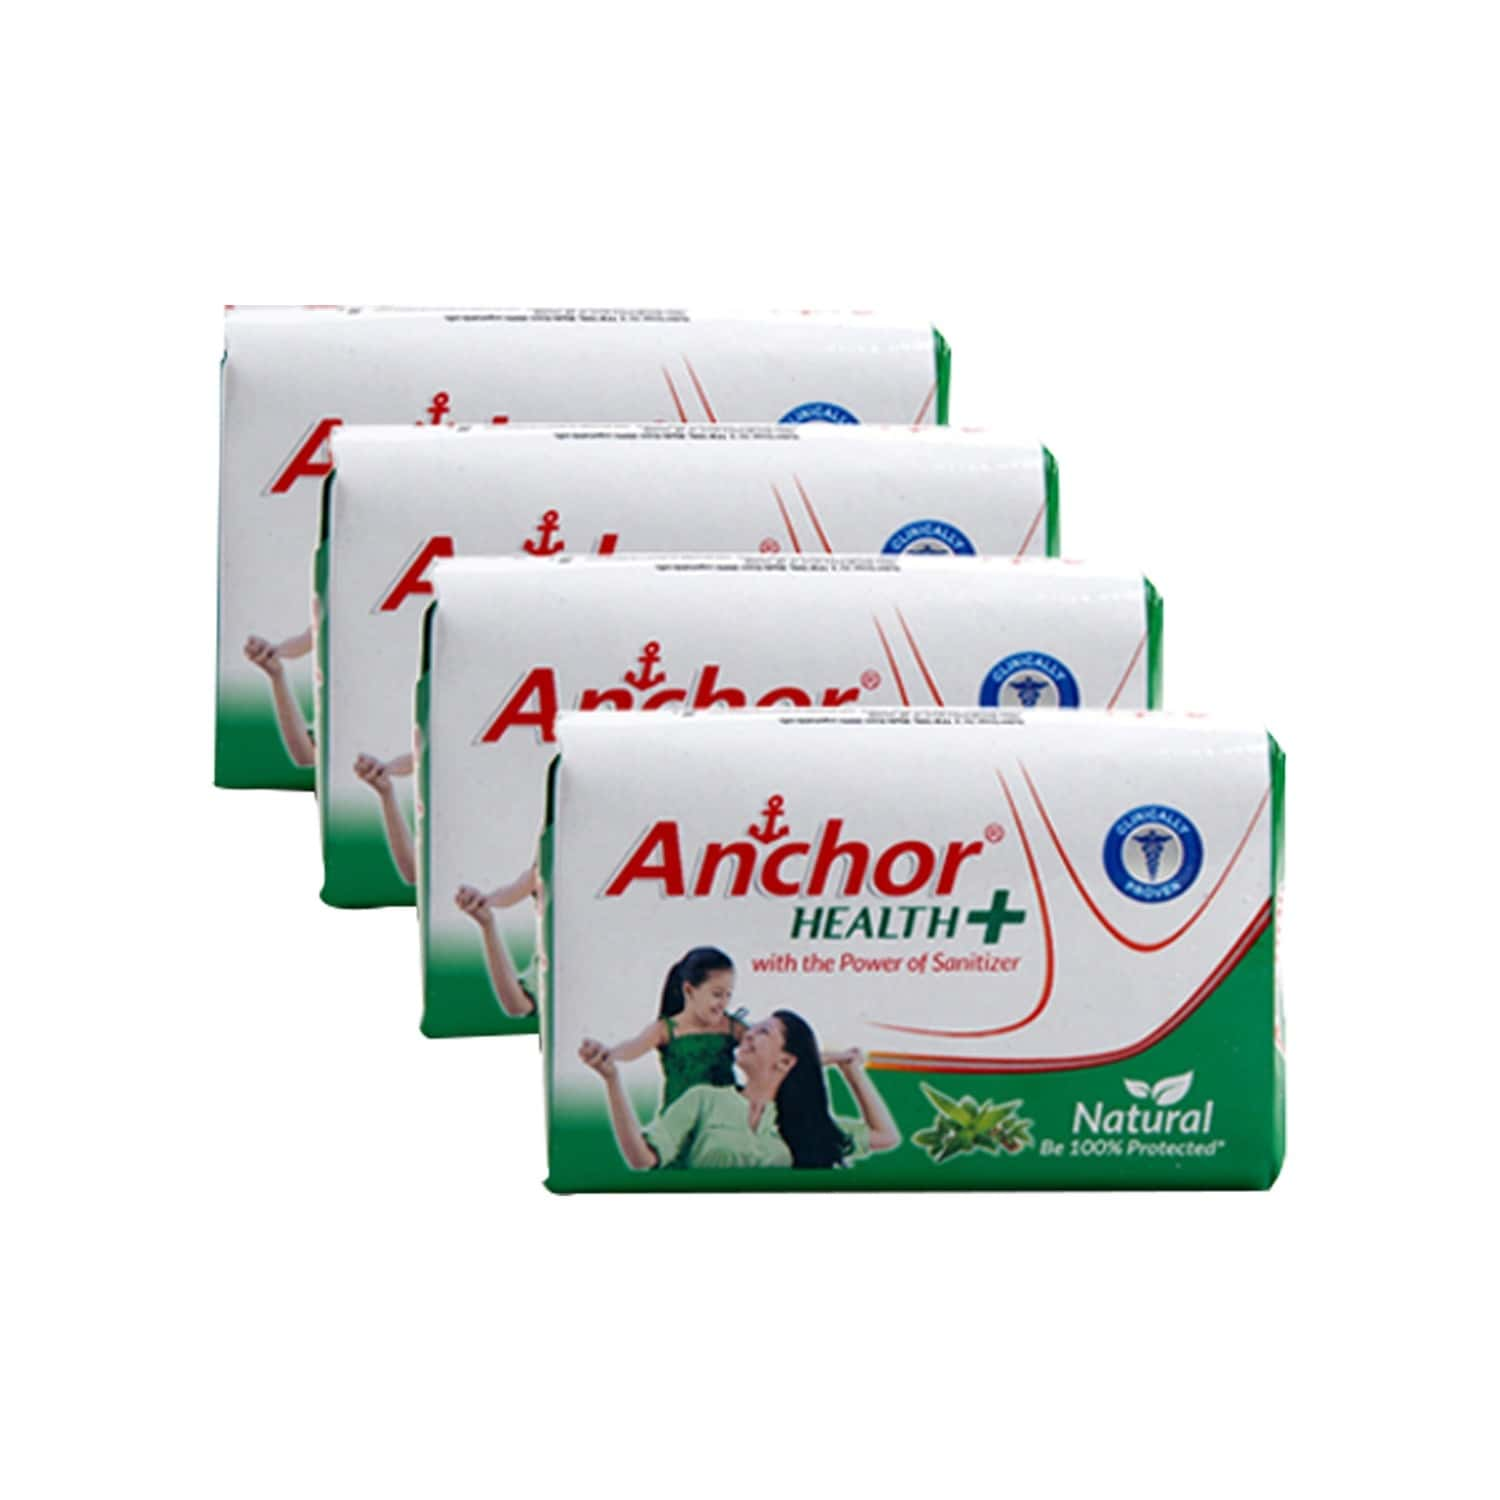 Anchor Natural Health Soap Pack Of 500 G